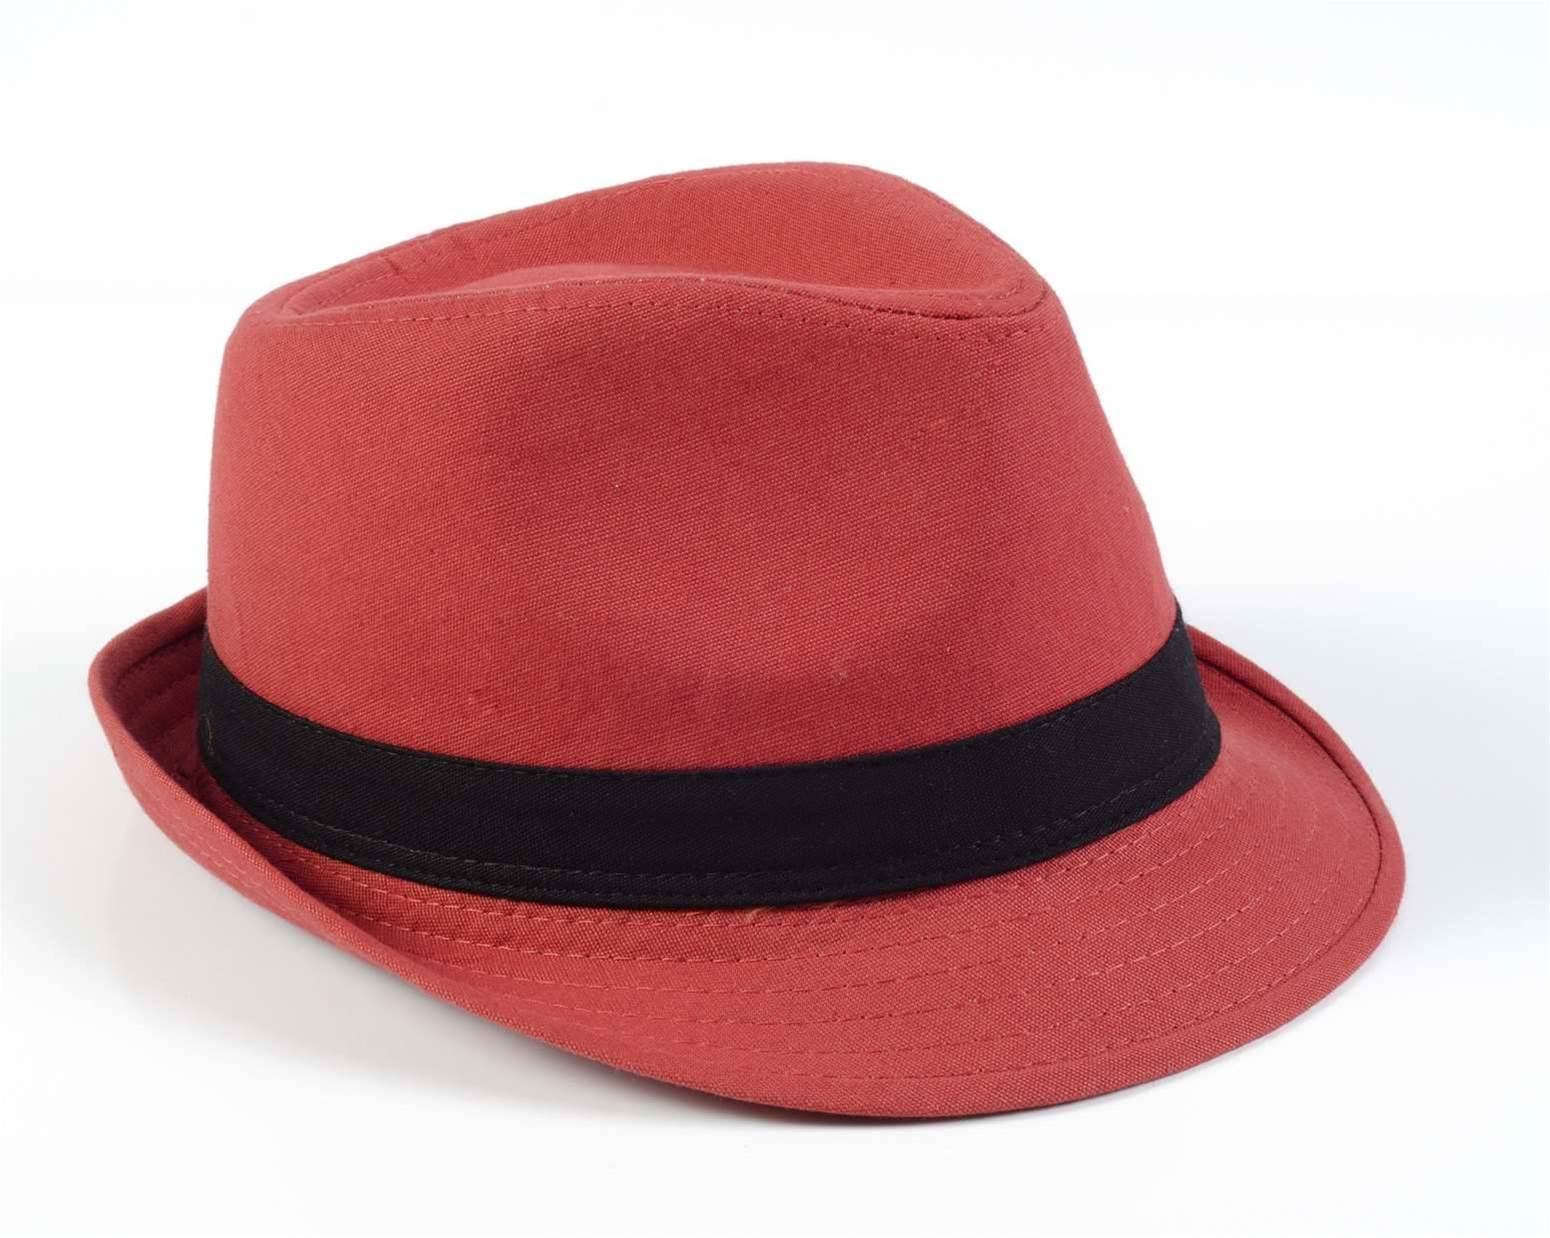 Red Hat releases Enterprise Linux 7.3 into the wild